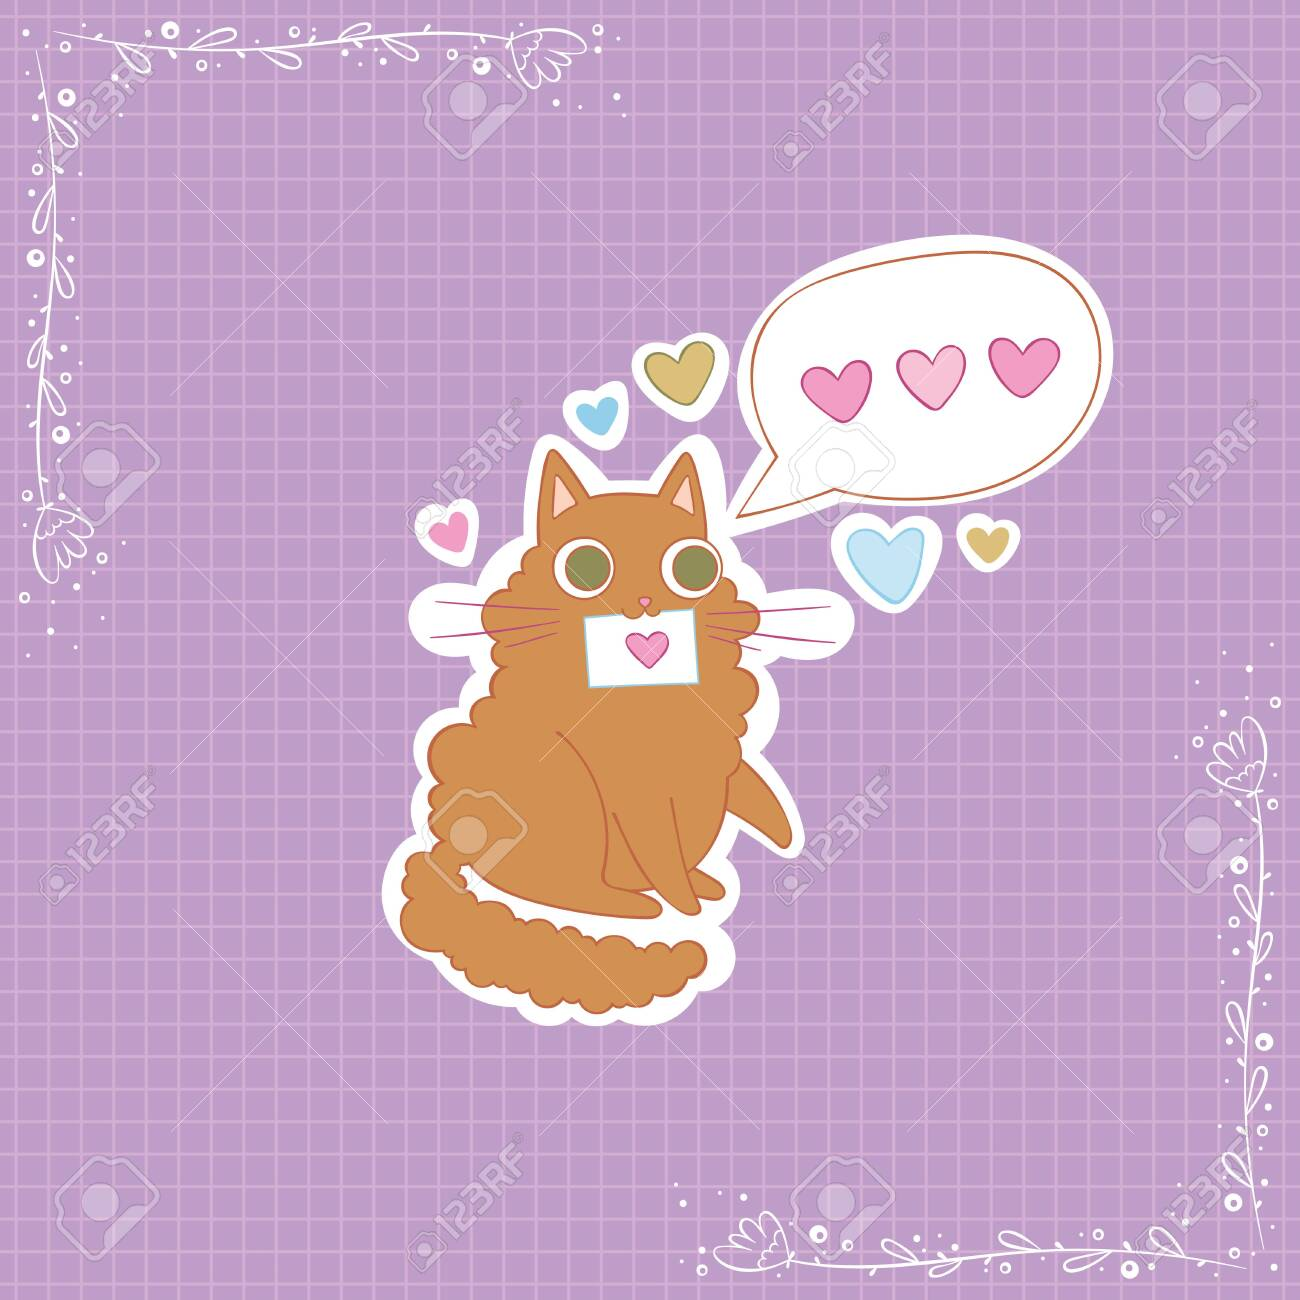 Cute cat. Love message. Hearts. Stickers Checkered background. Isolated vector objects. - 143100350